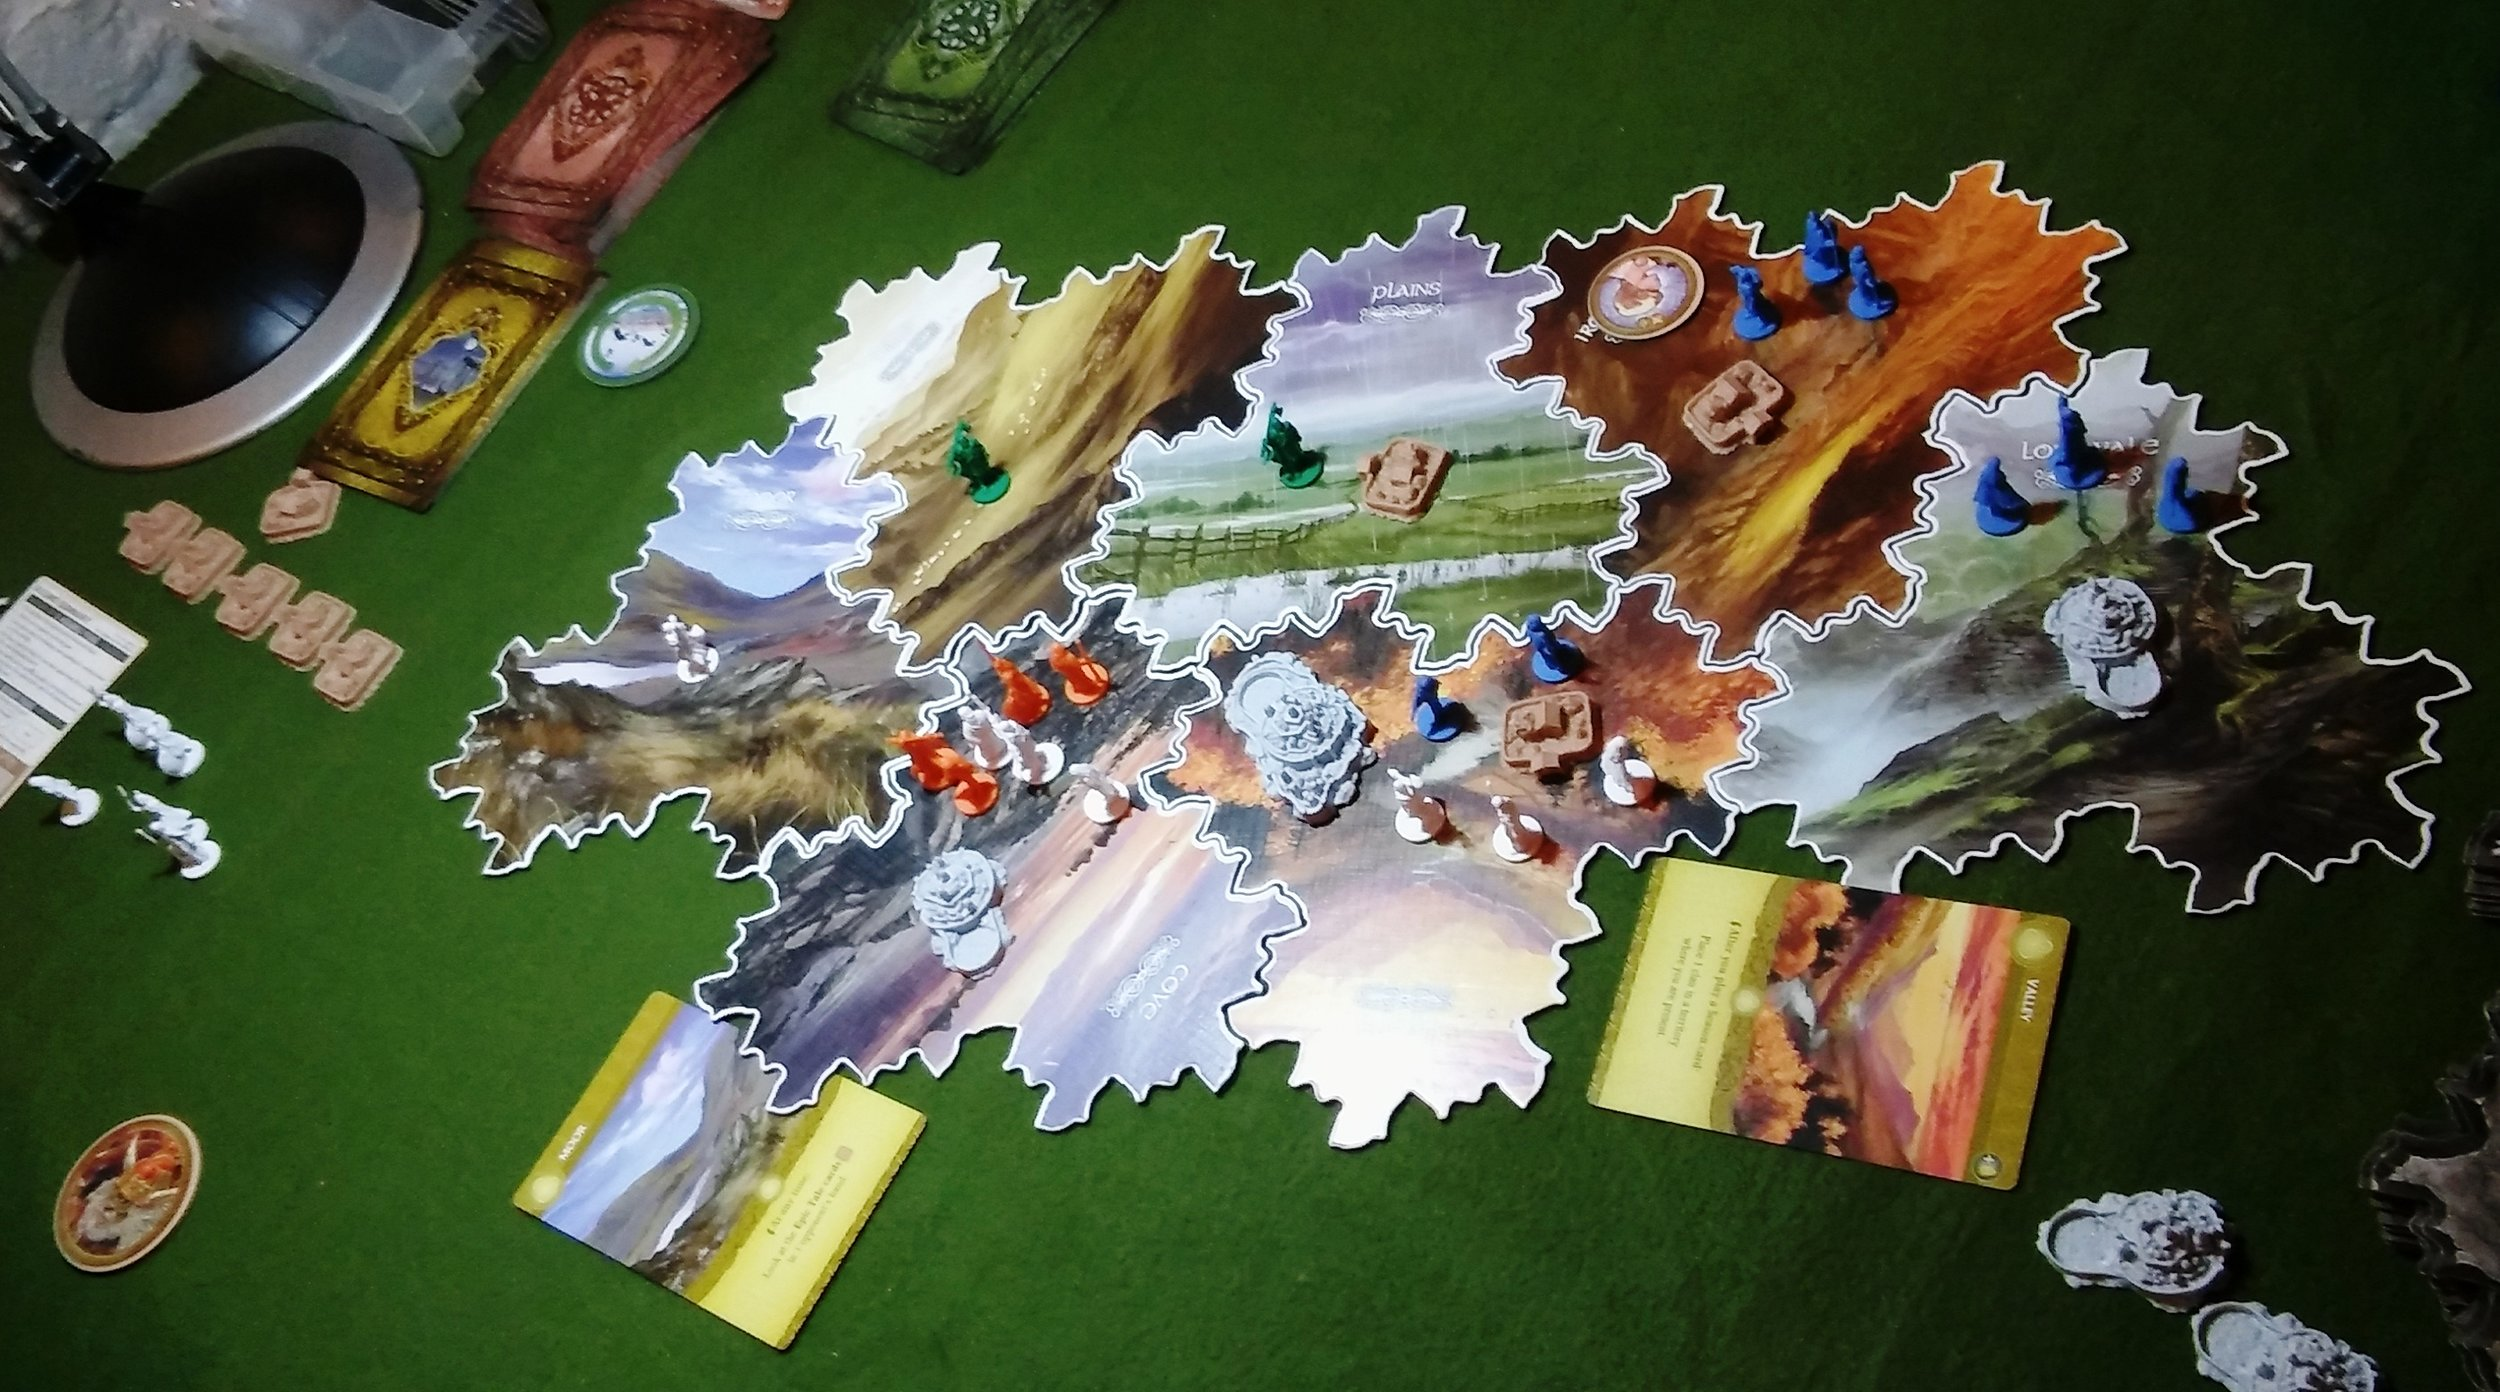 Inis - a game I have yet to play